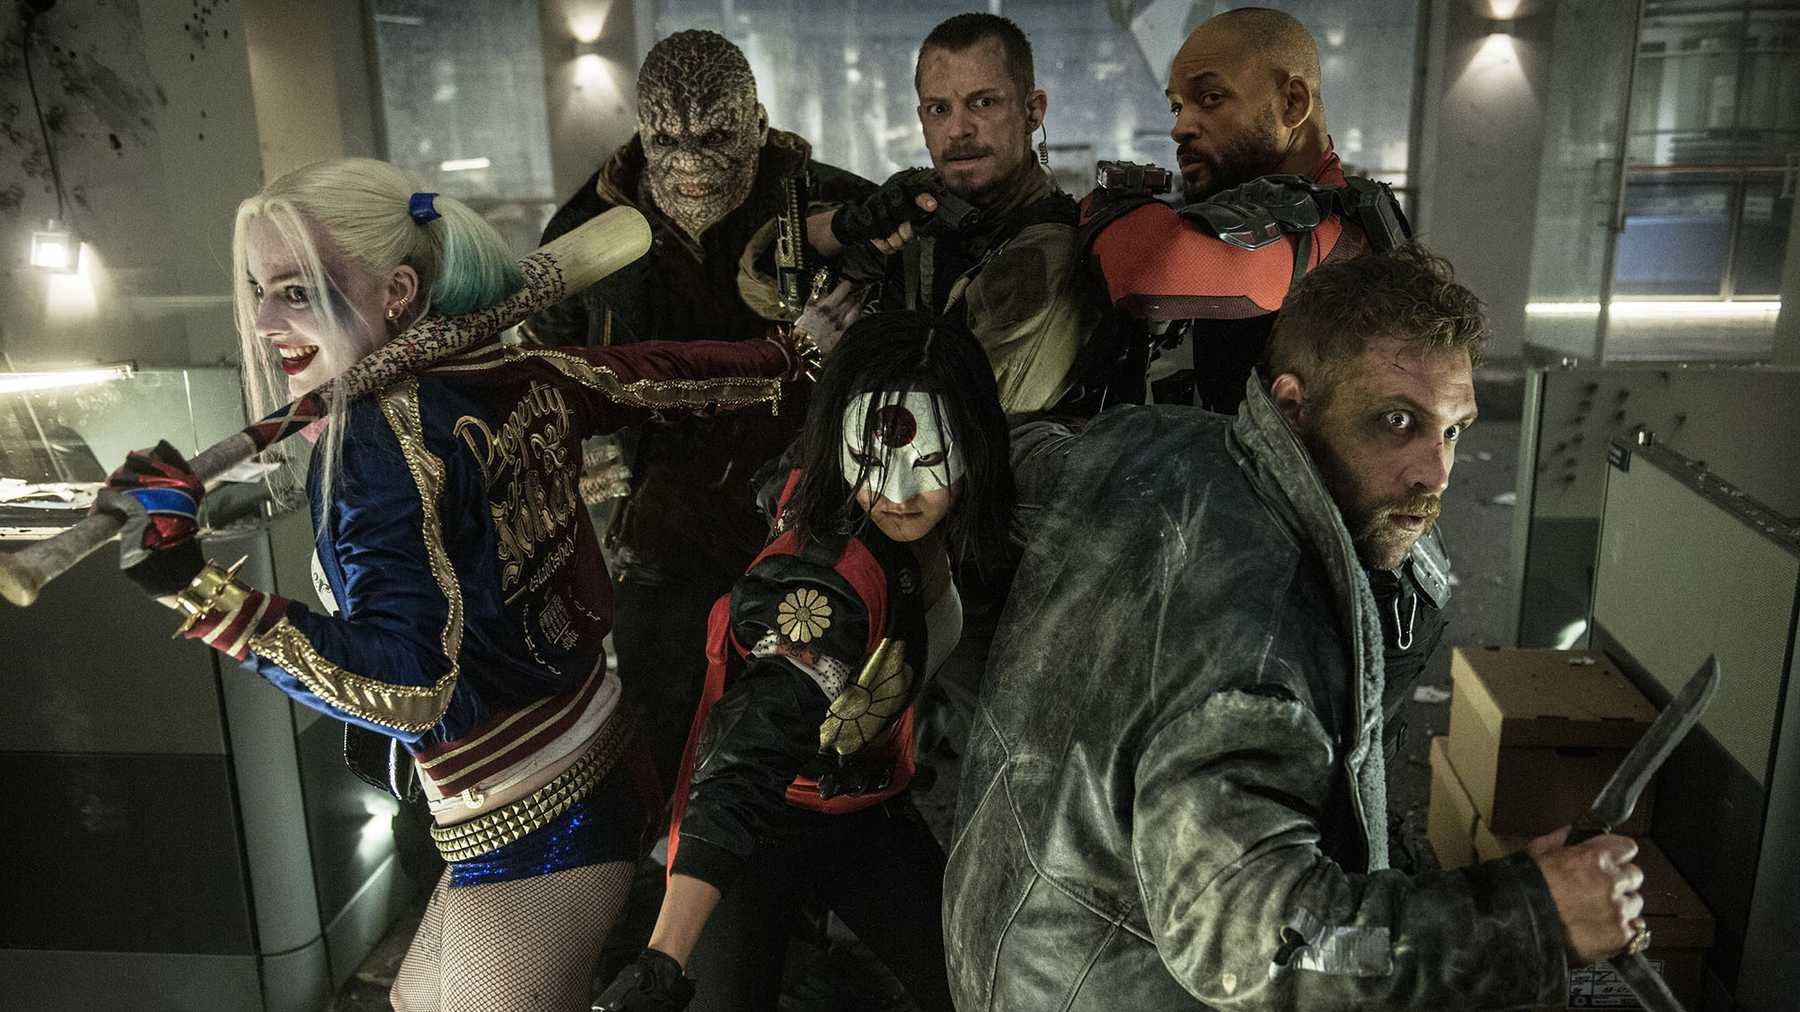 Suicide Squad Costume By Costume Movies Empire